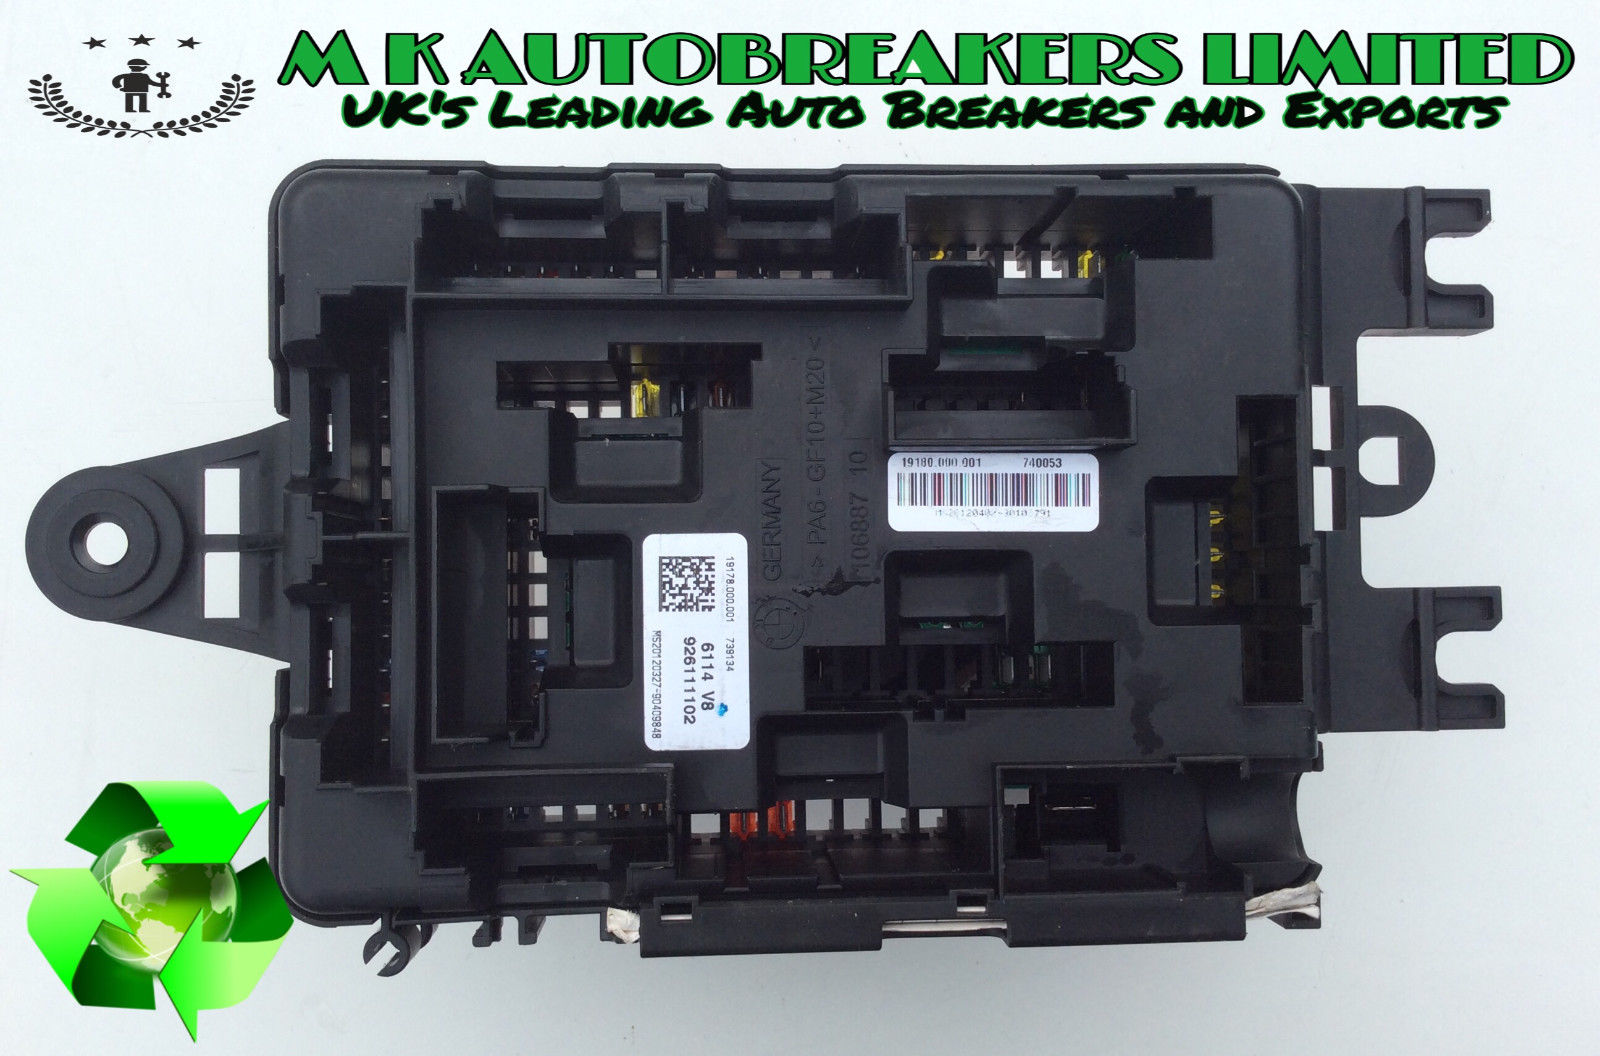 fuse box buy spares for bmw e fuses and wiring librarybmw f30 from 12 15 sam power fuse box (breaking for spare parts bmw fuse box buy spares for bmw e fuses and